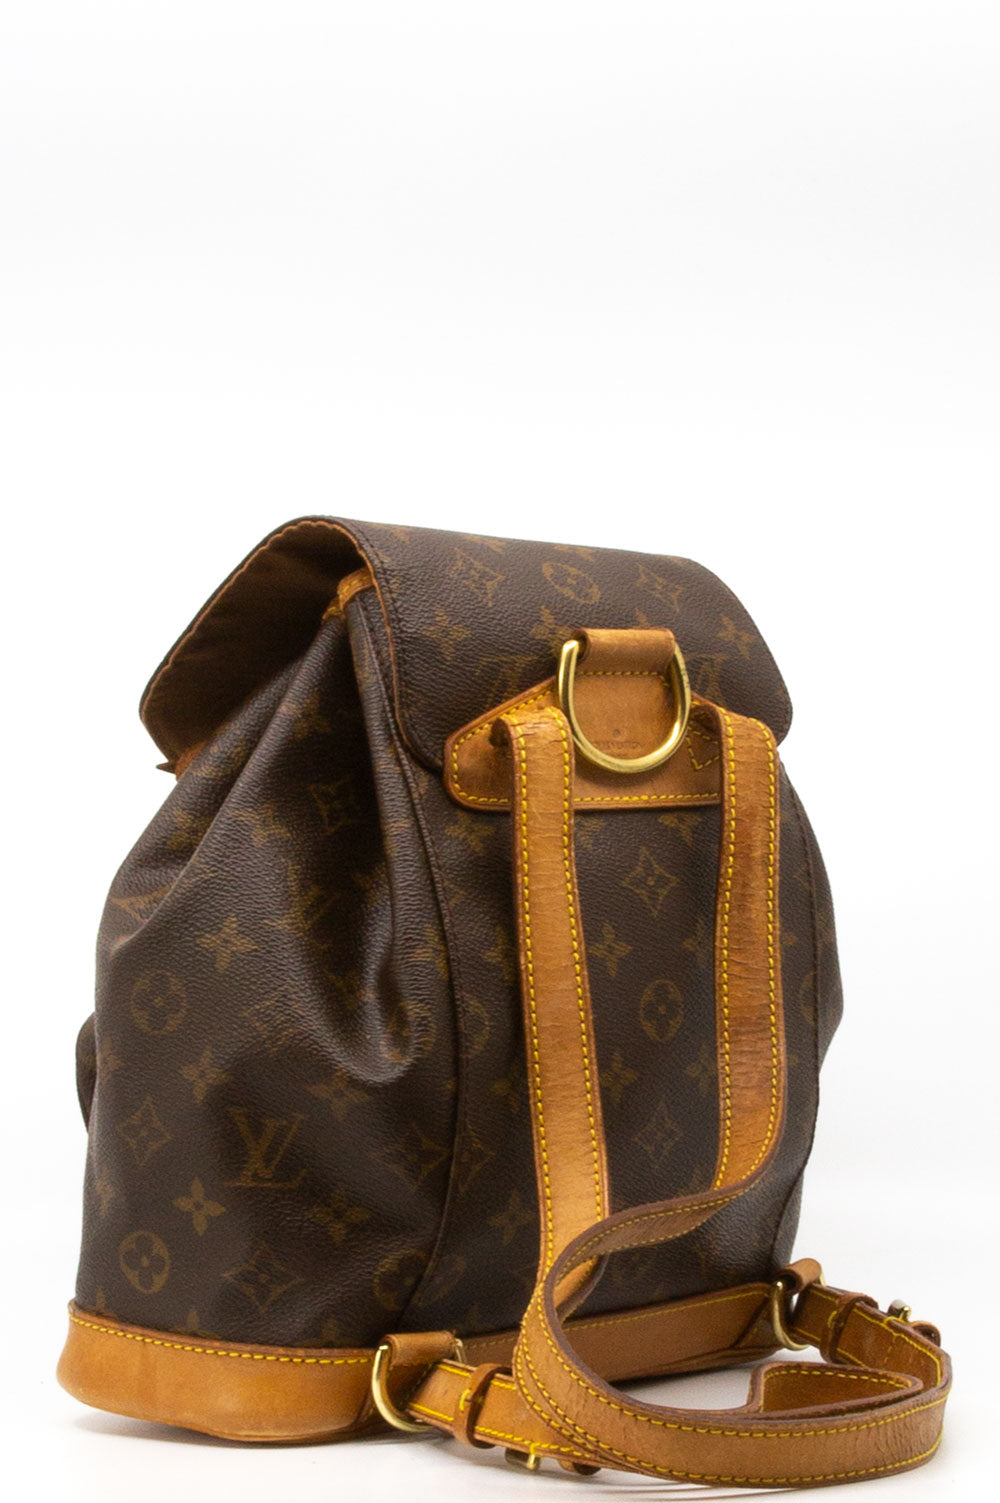 LOUIS VUITTON Vintage Backpack